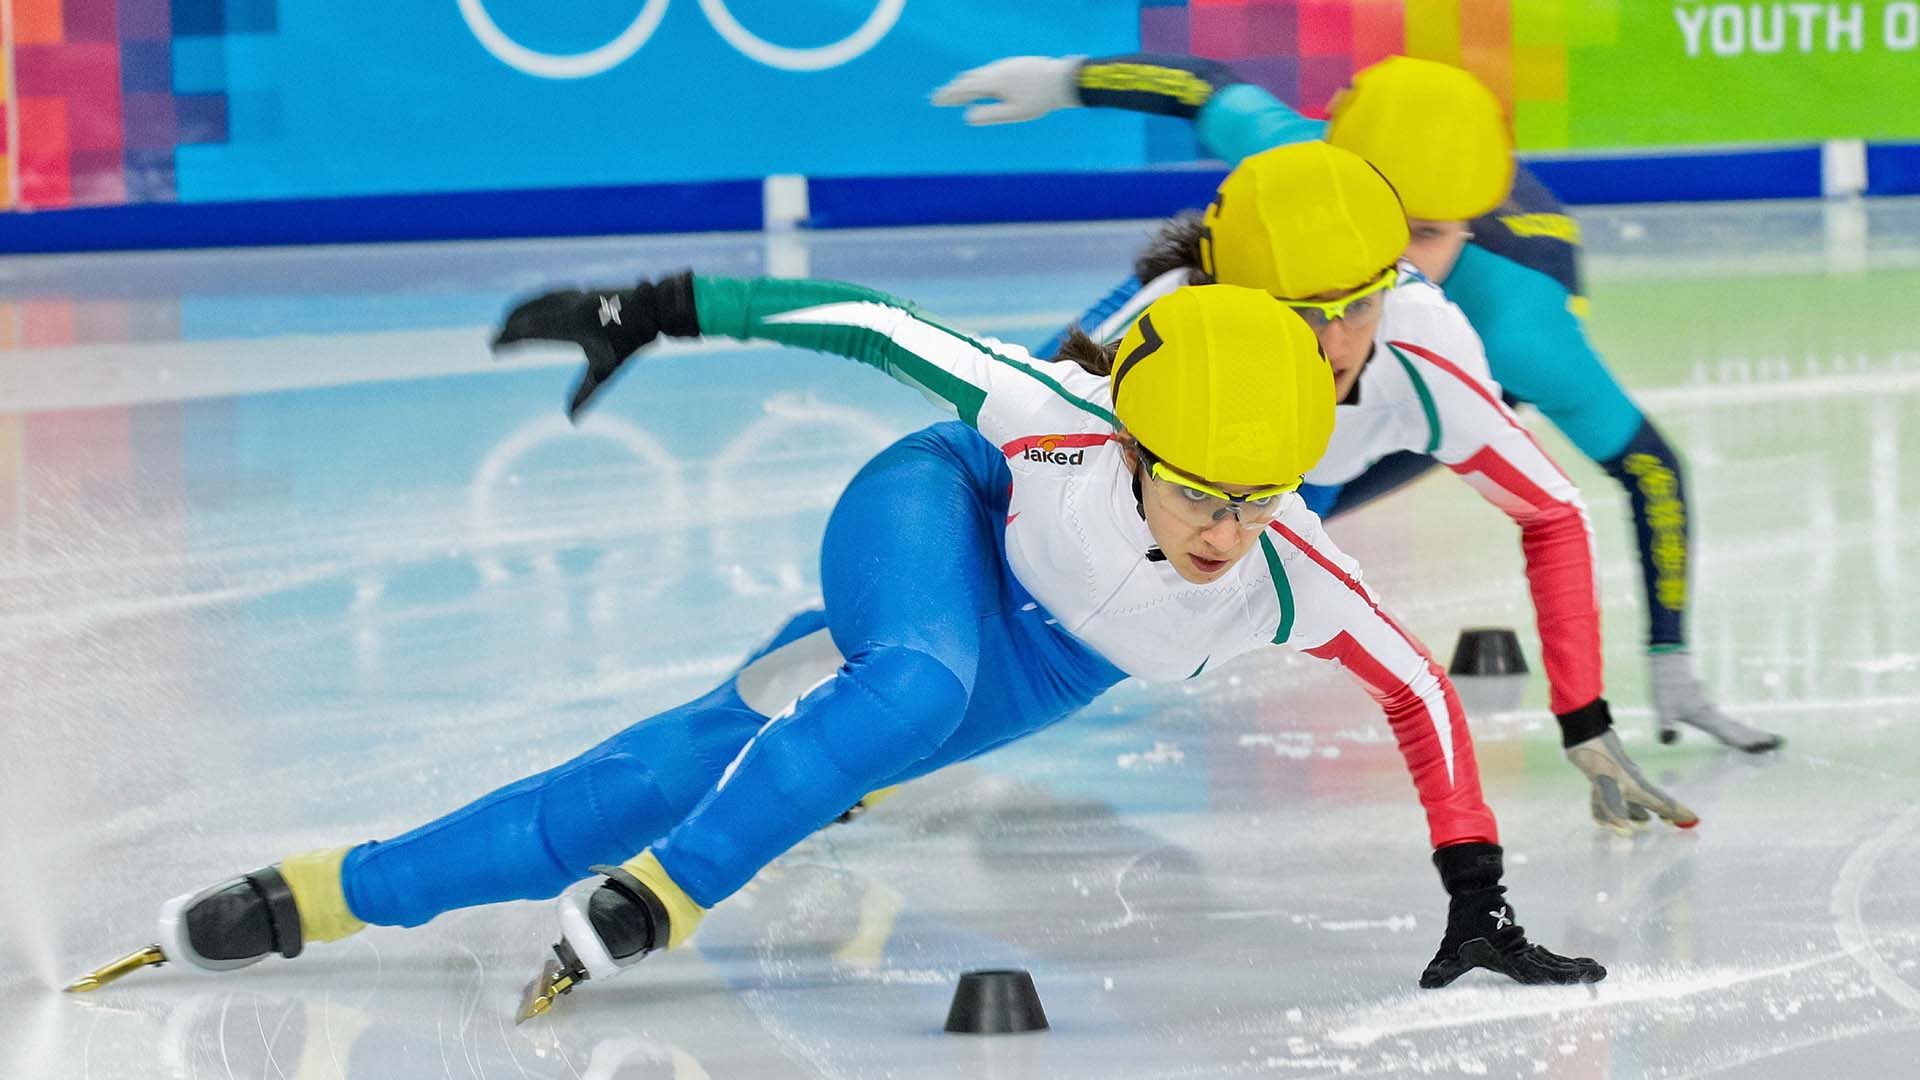 Speed skaters racing in Winter Olympics